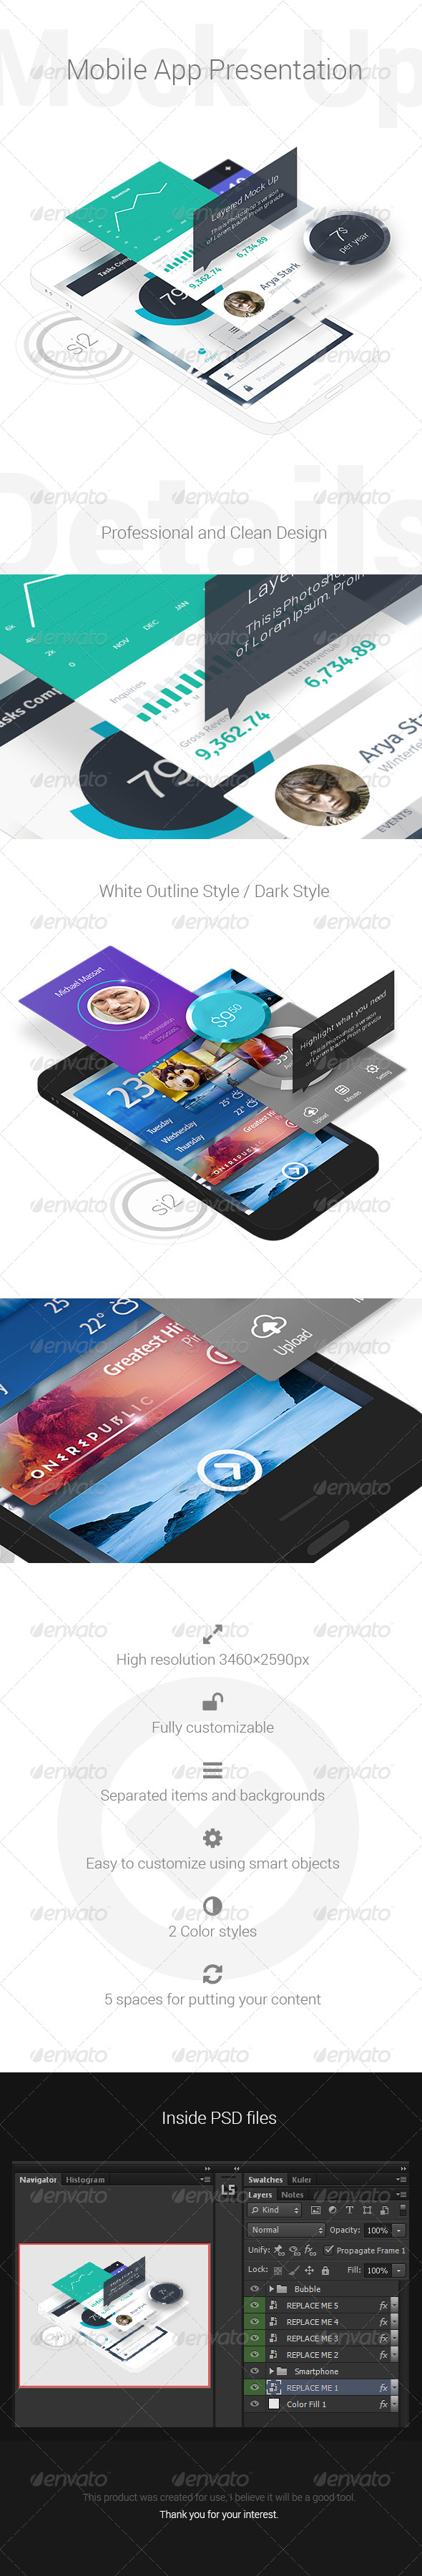 Mobile App Presentation Mock-Up by GoaShape | GraphicRiver